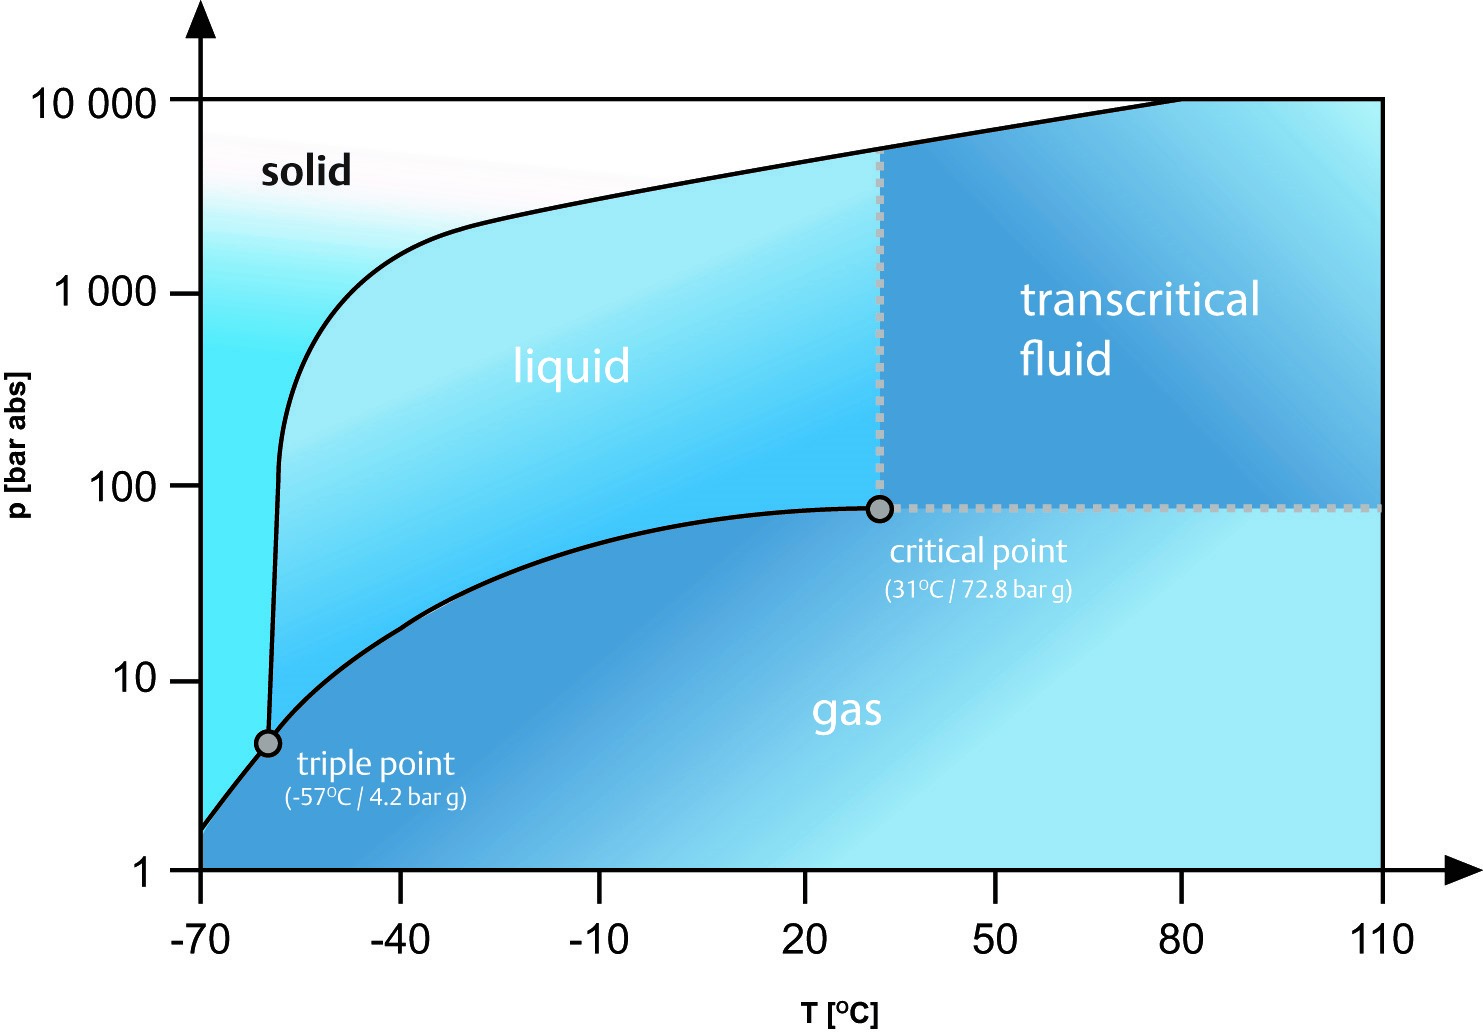 hight resolution of figure 1 r744 co2 phase diagram the triple point occurs